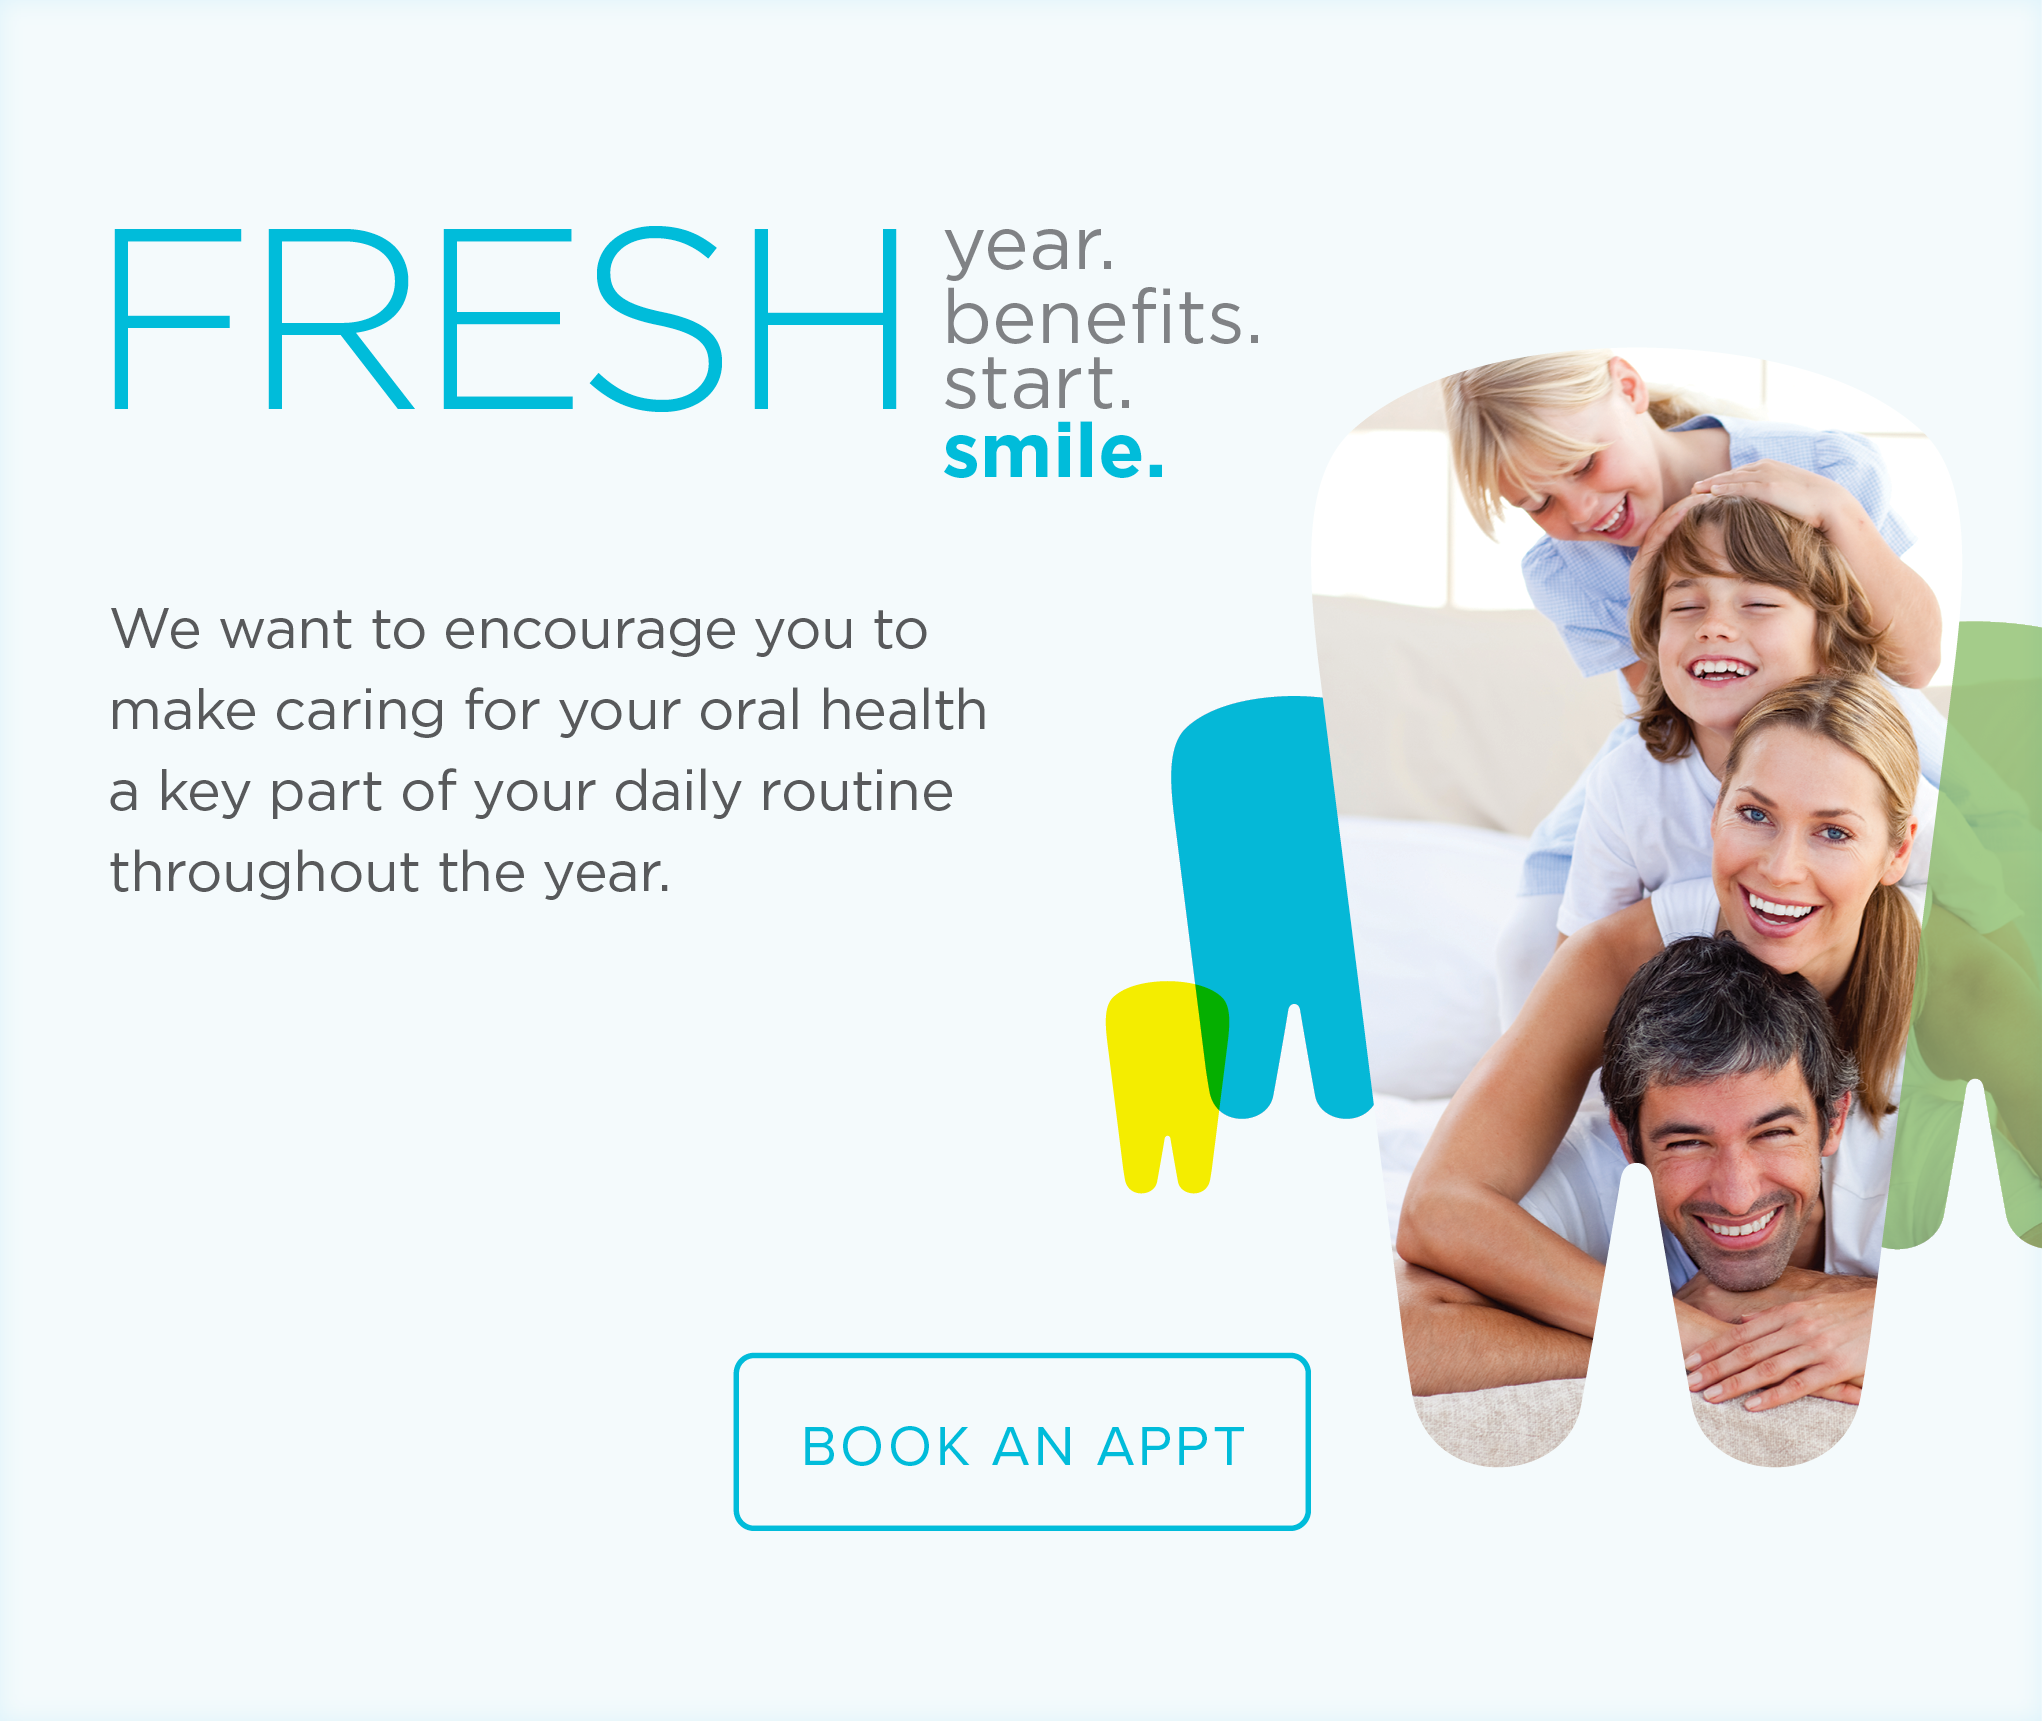 Flagstaff Modern Dentistry - Make the Most of Your Benefits